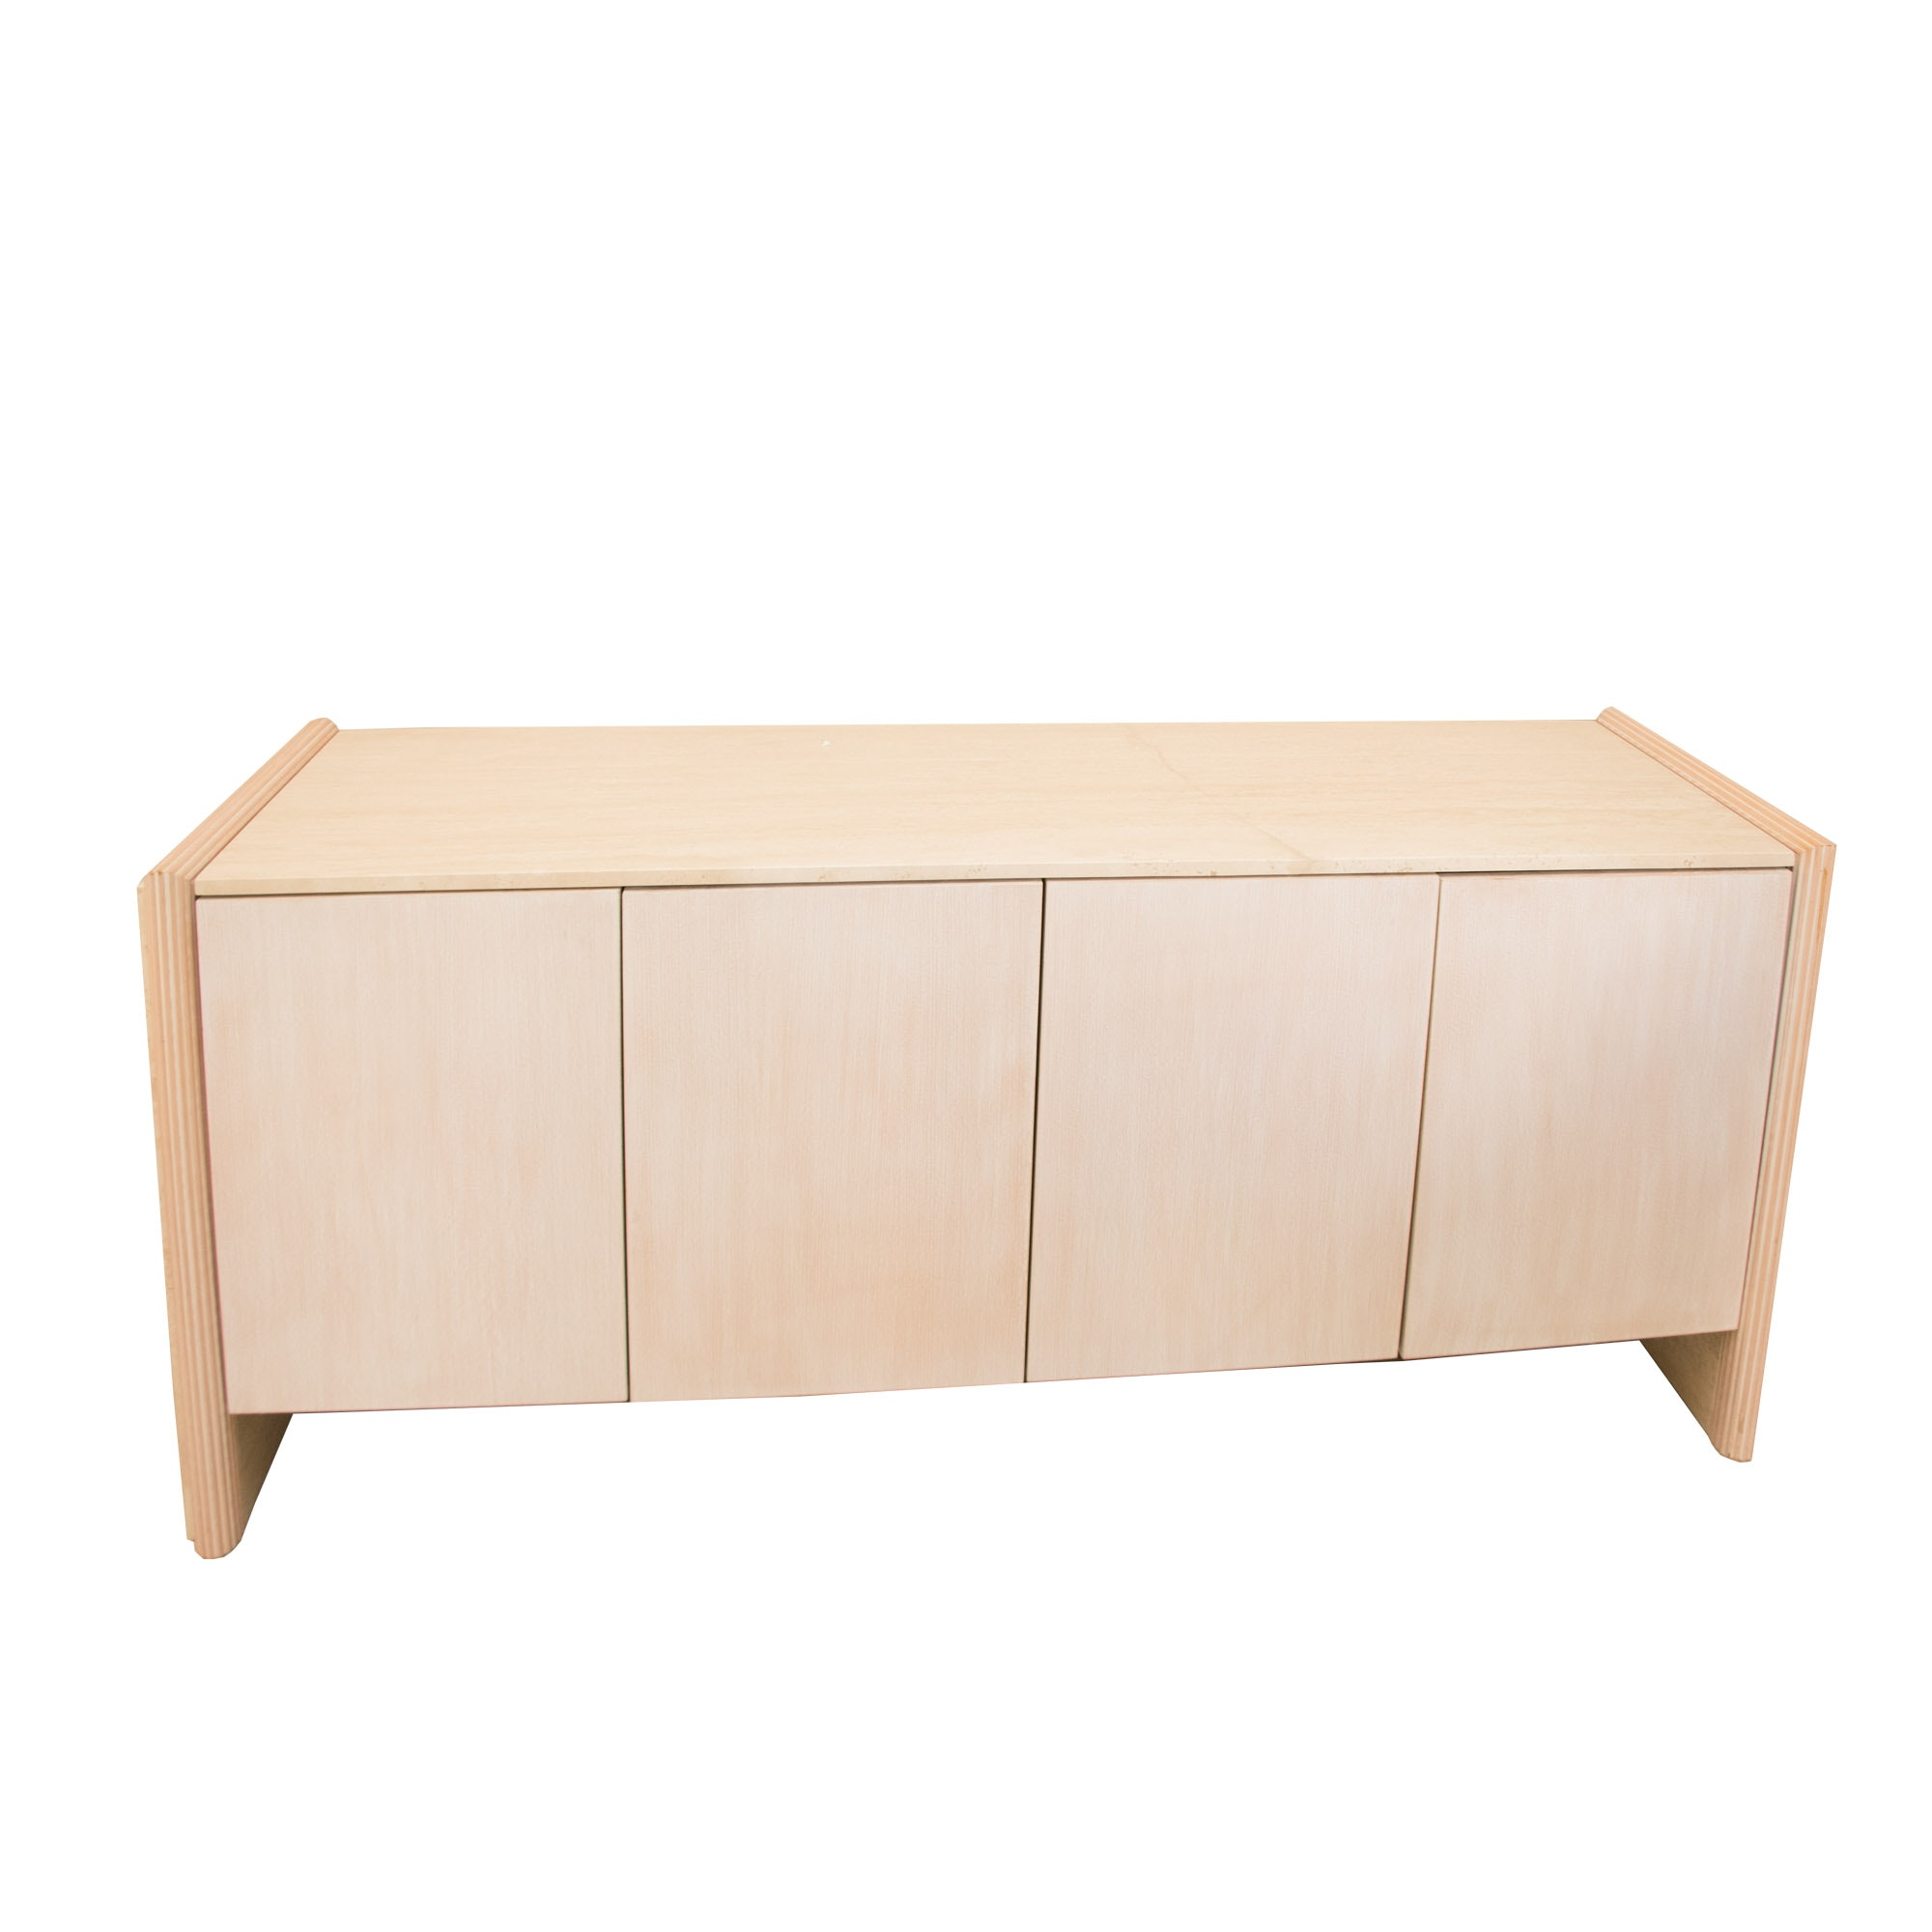 Mid Century Modern Style Sideboard, Late 20th Century